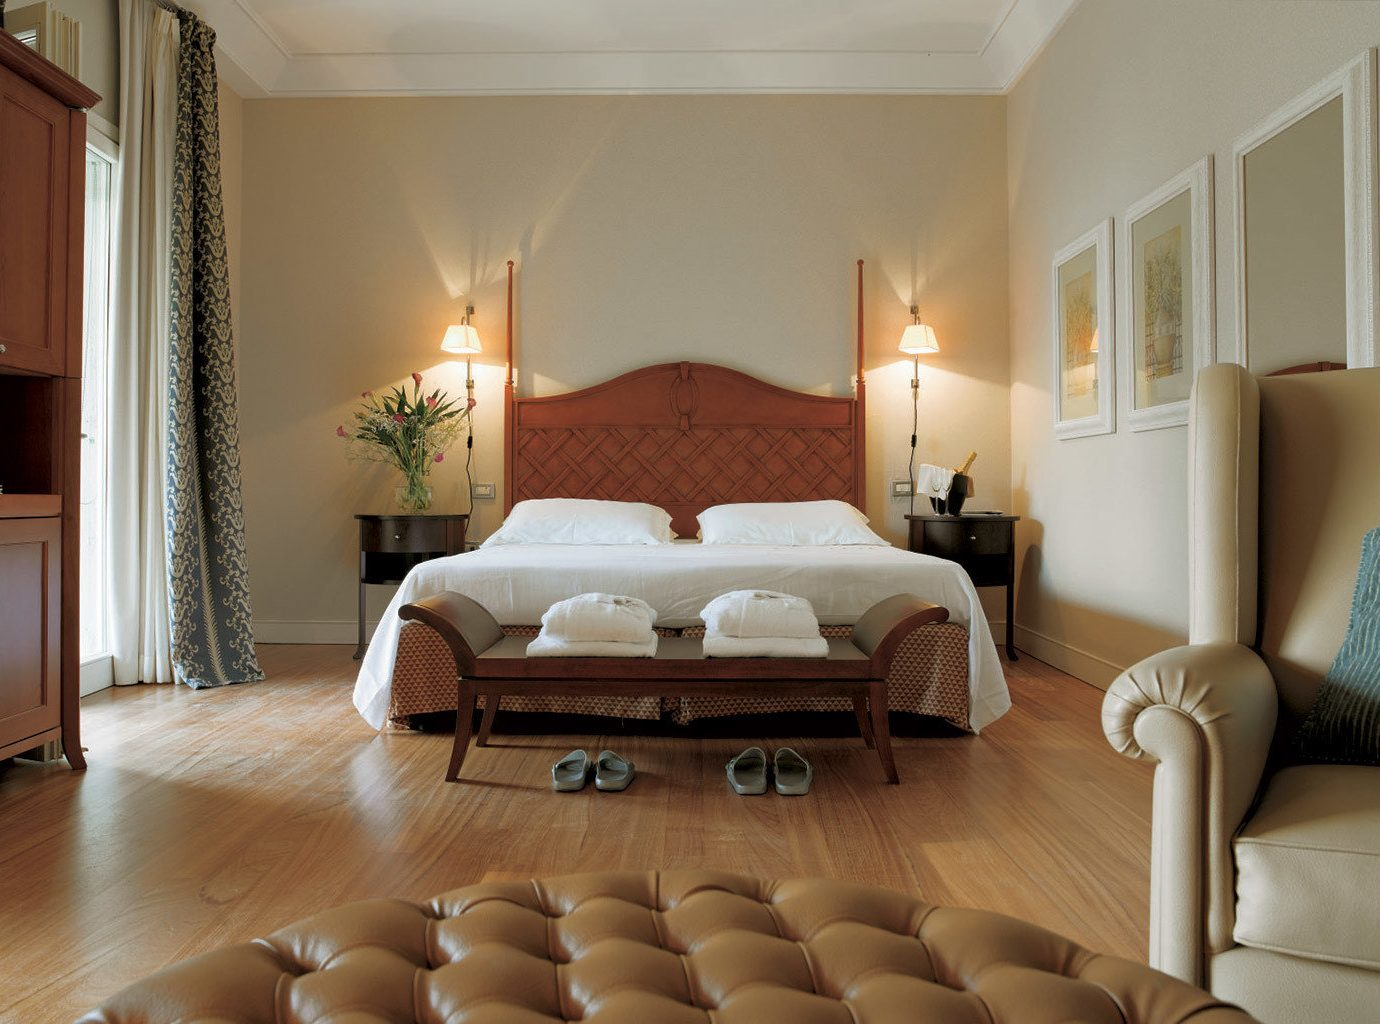 Bedroom Classic Country Elegant Historic Luxury Romance Romantic property living room Suite home hardwood bed frame flat